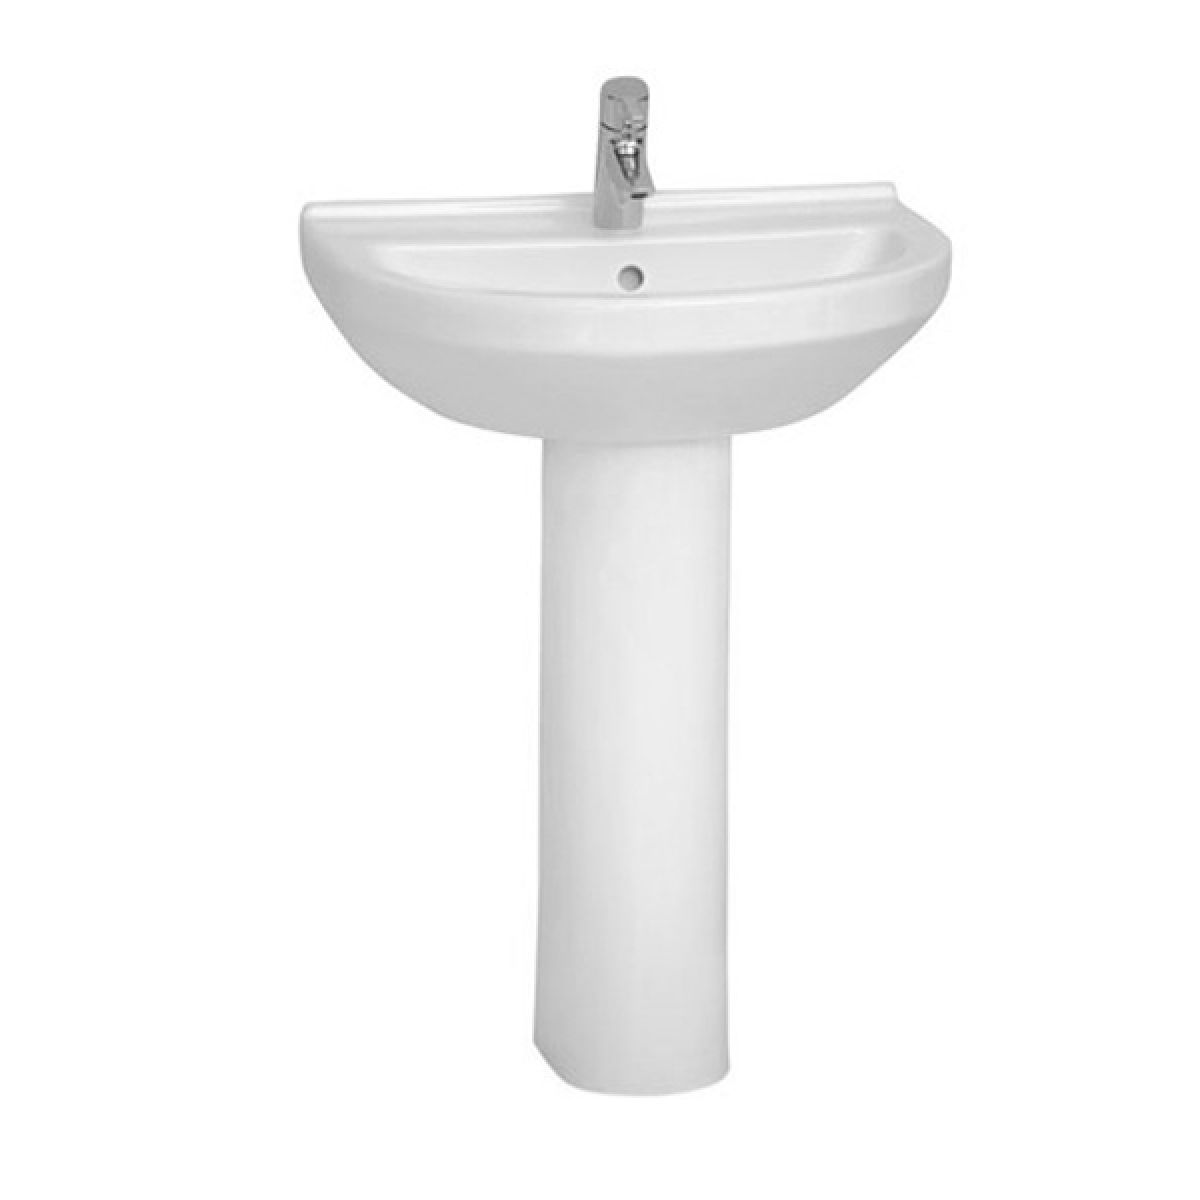 Vitra S50 1 Tap Hole Round Basin with Full Pedestal 650mm